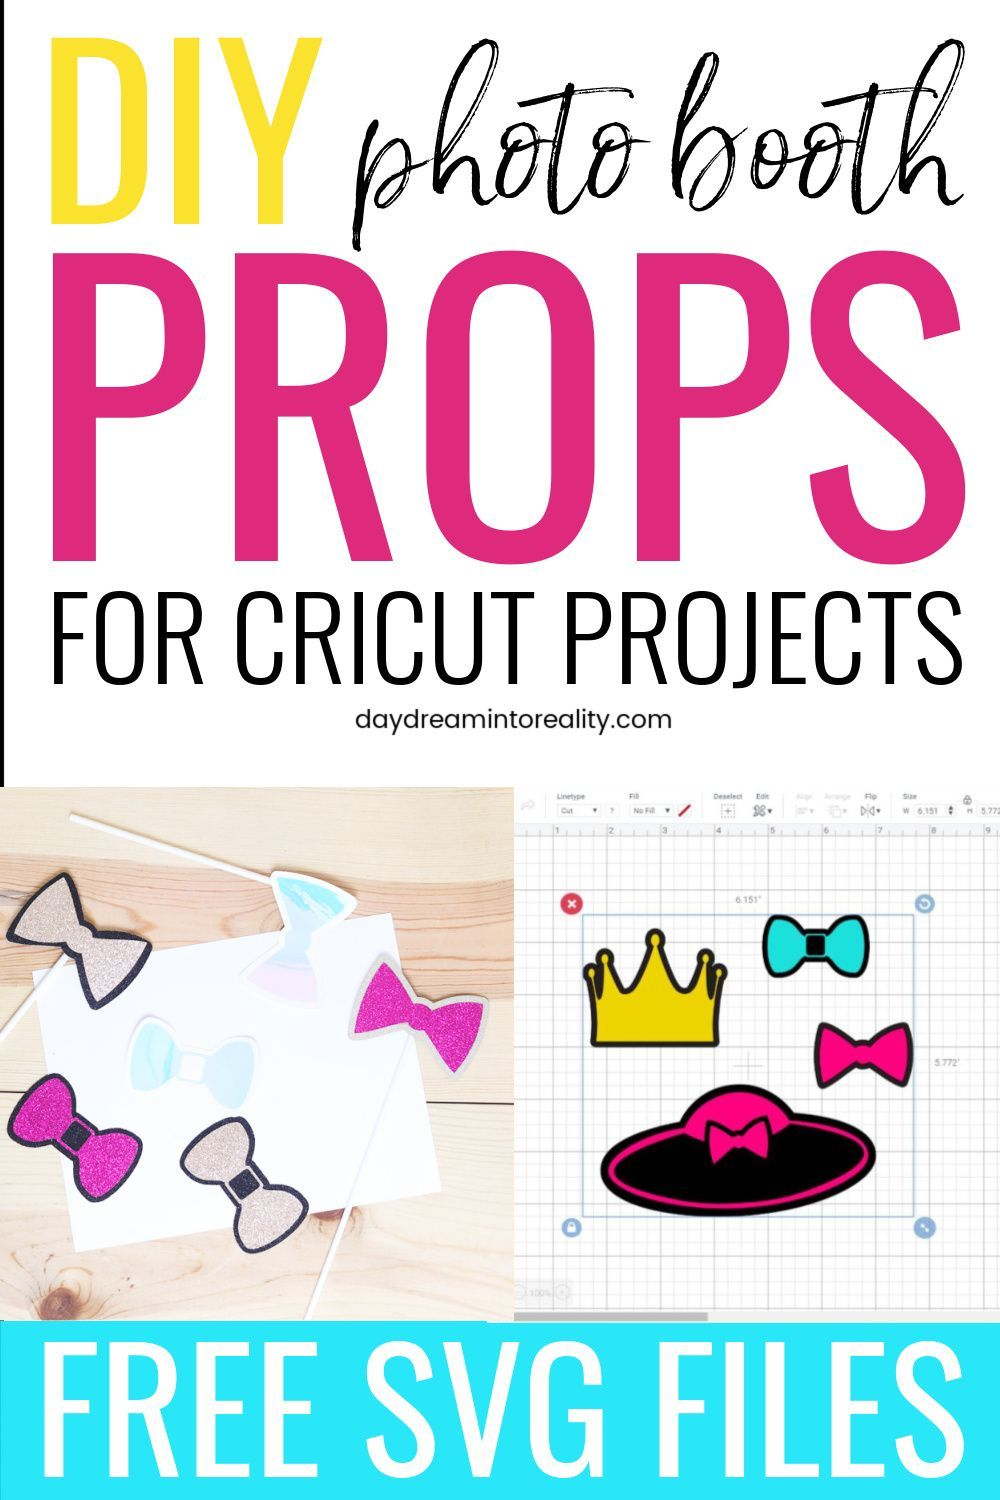 Diy photo booth props with cricut ideal for parties in